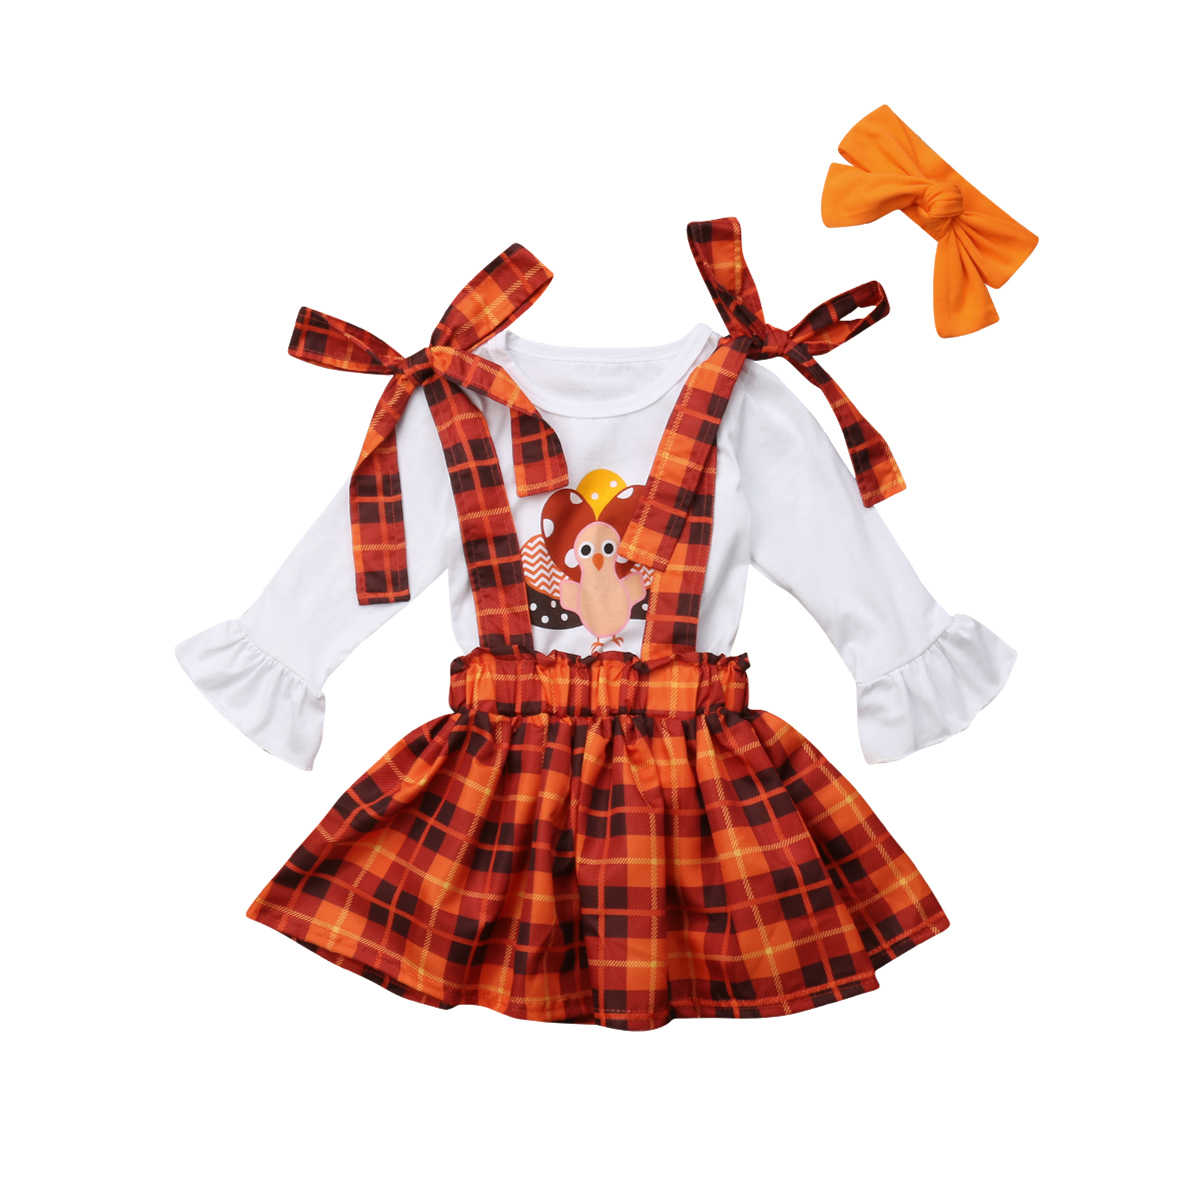 Thanksgiving Days Party Clothes Sets Infant Baby Girls 2PCS Turkey Print Long Sleeve Pullover Tops+Belt Plaid Bibs Dress